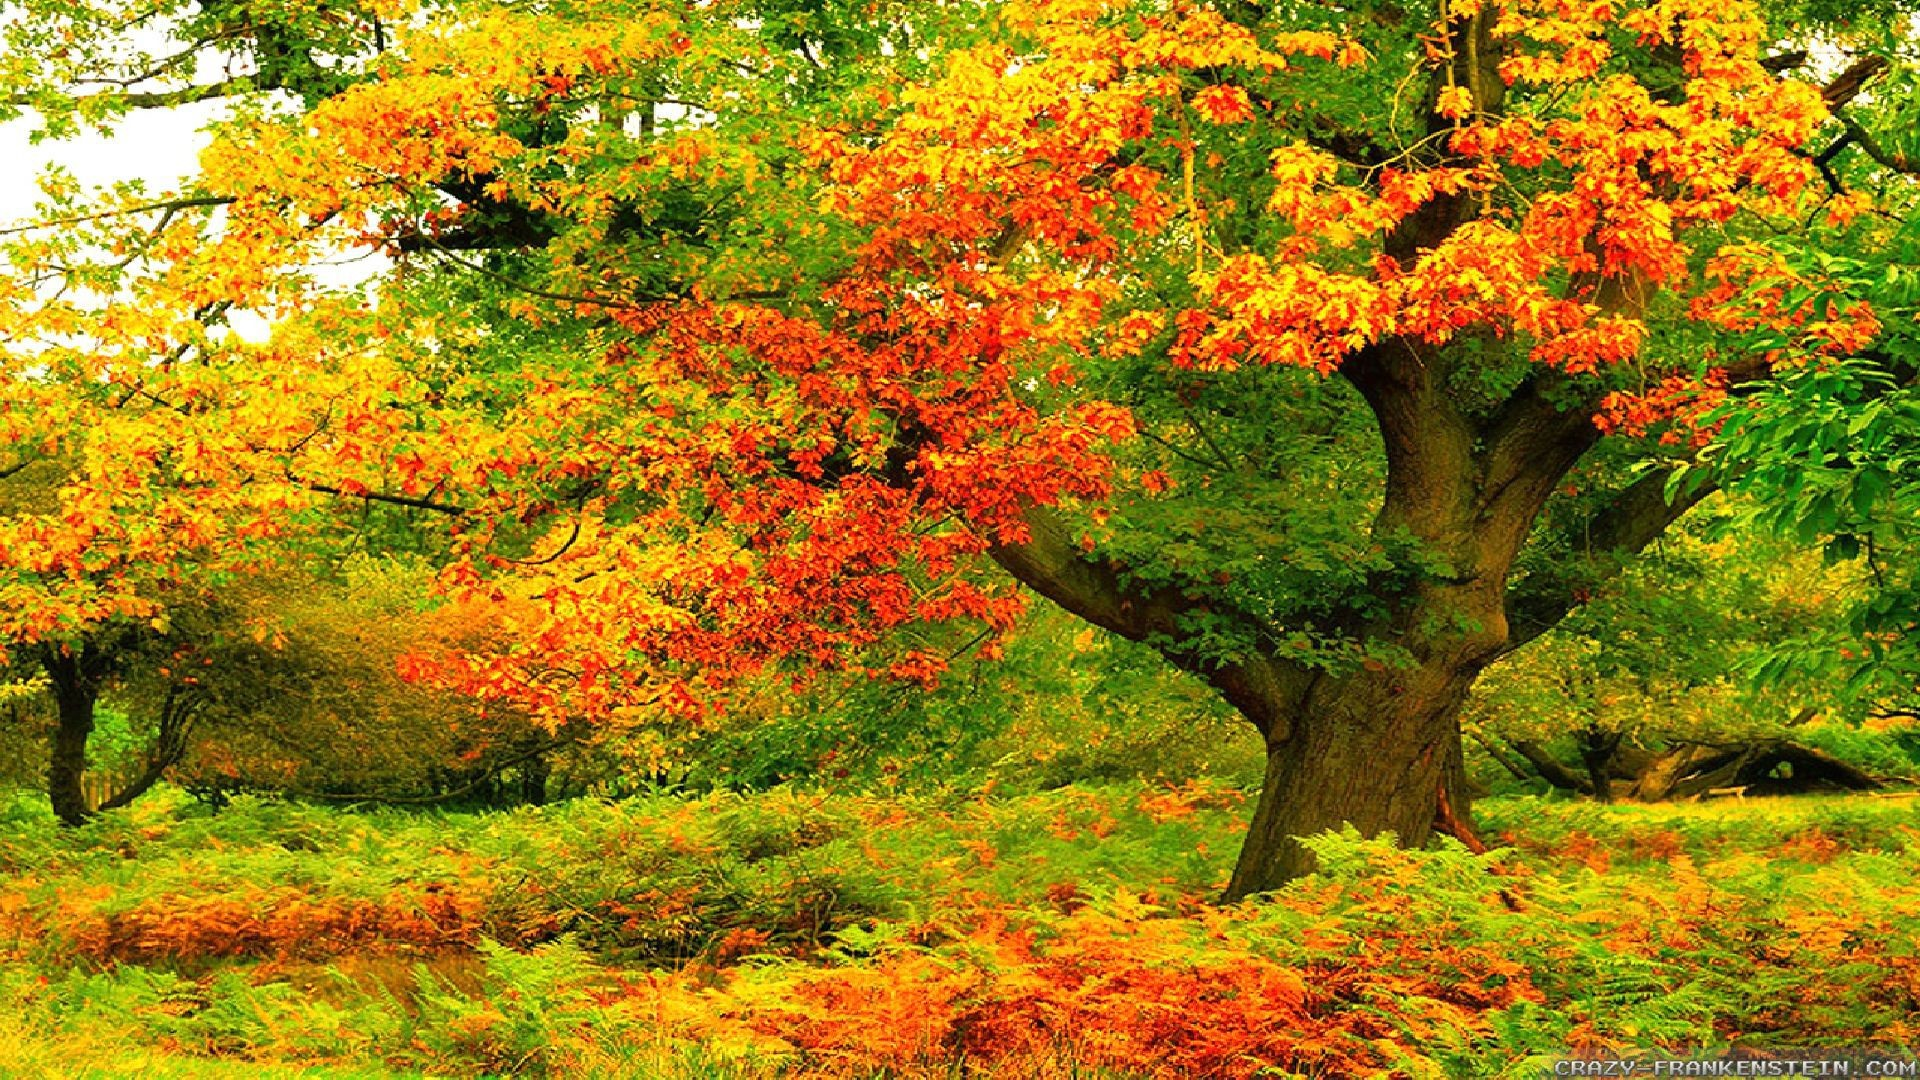 Wallpaper: Big colorful autumn tree wallpapers. Resolution: 1024×768    1280×1024   1600×1200. Widescreen Res: 1440×900   1680×1050   1920×1200